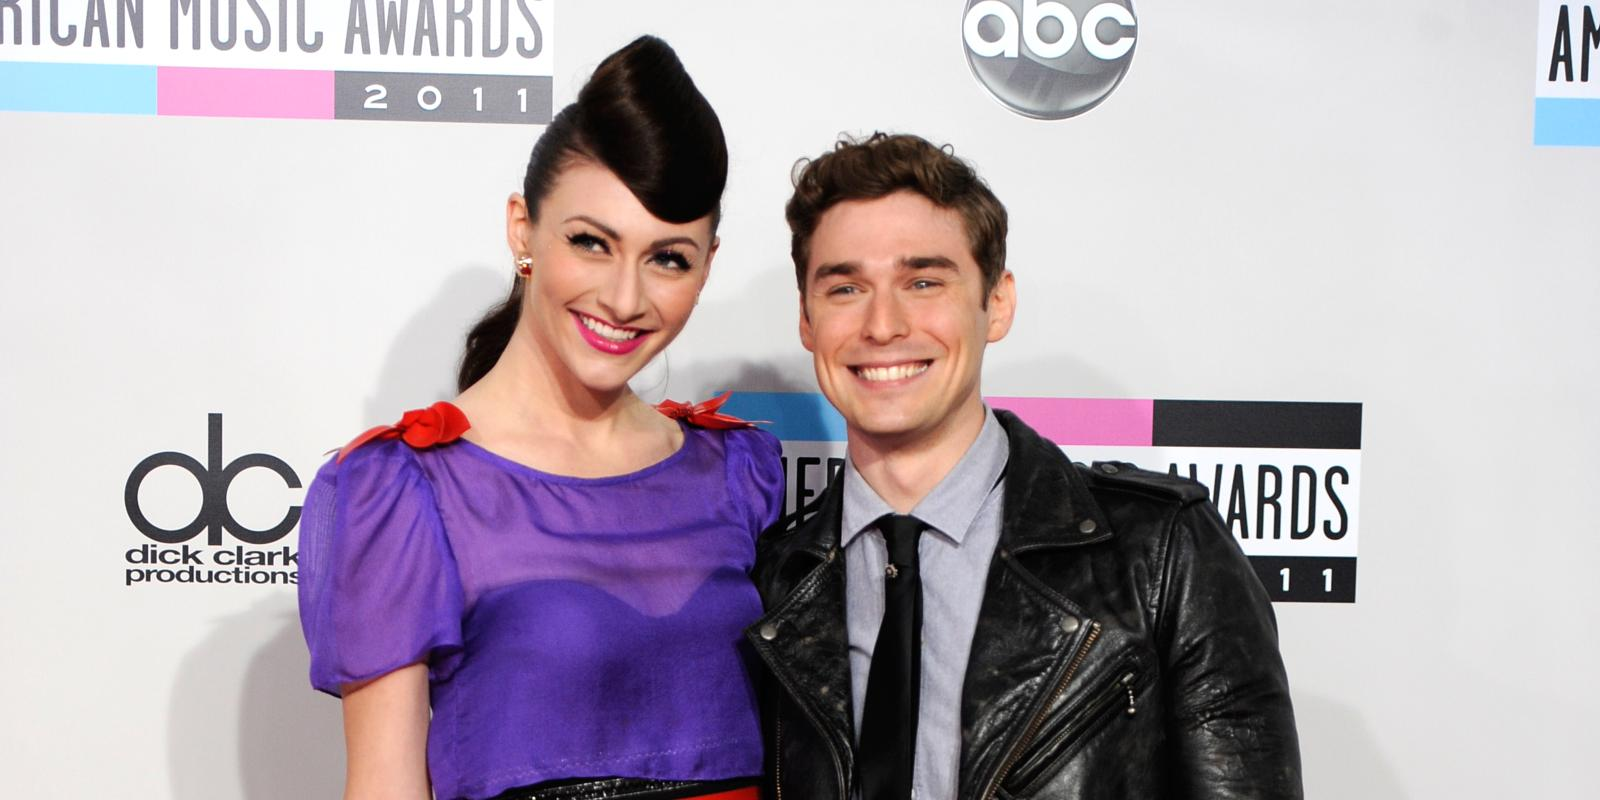 Is the band karmin dating